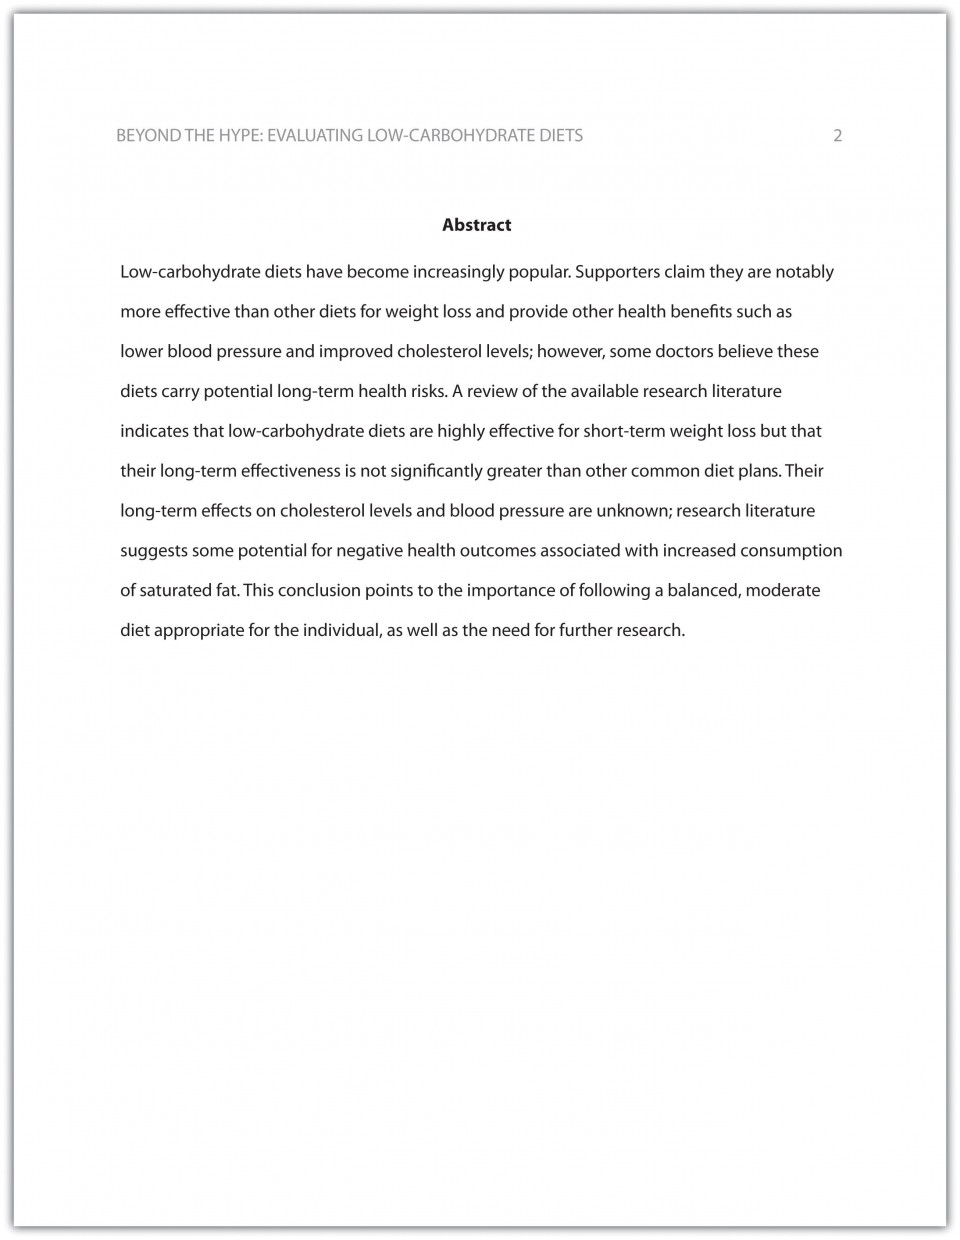 014 Research Paper College English Incredible Ideas 960